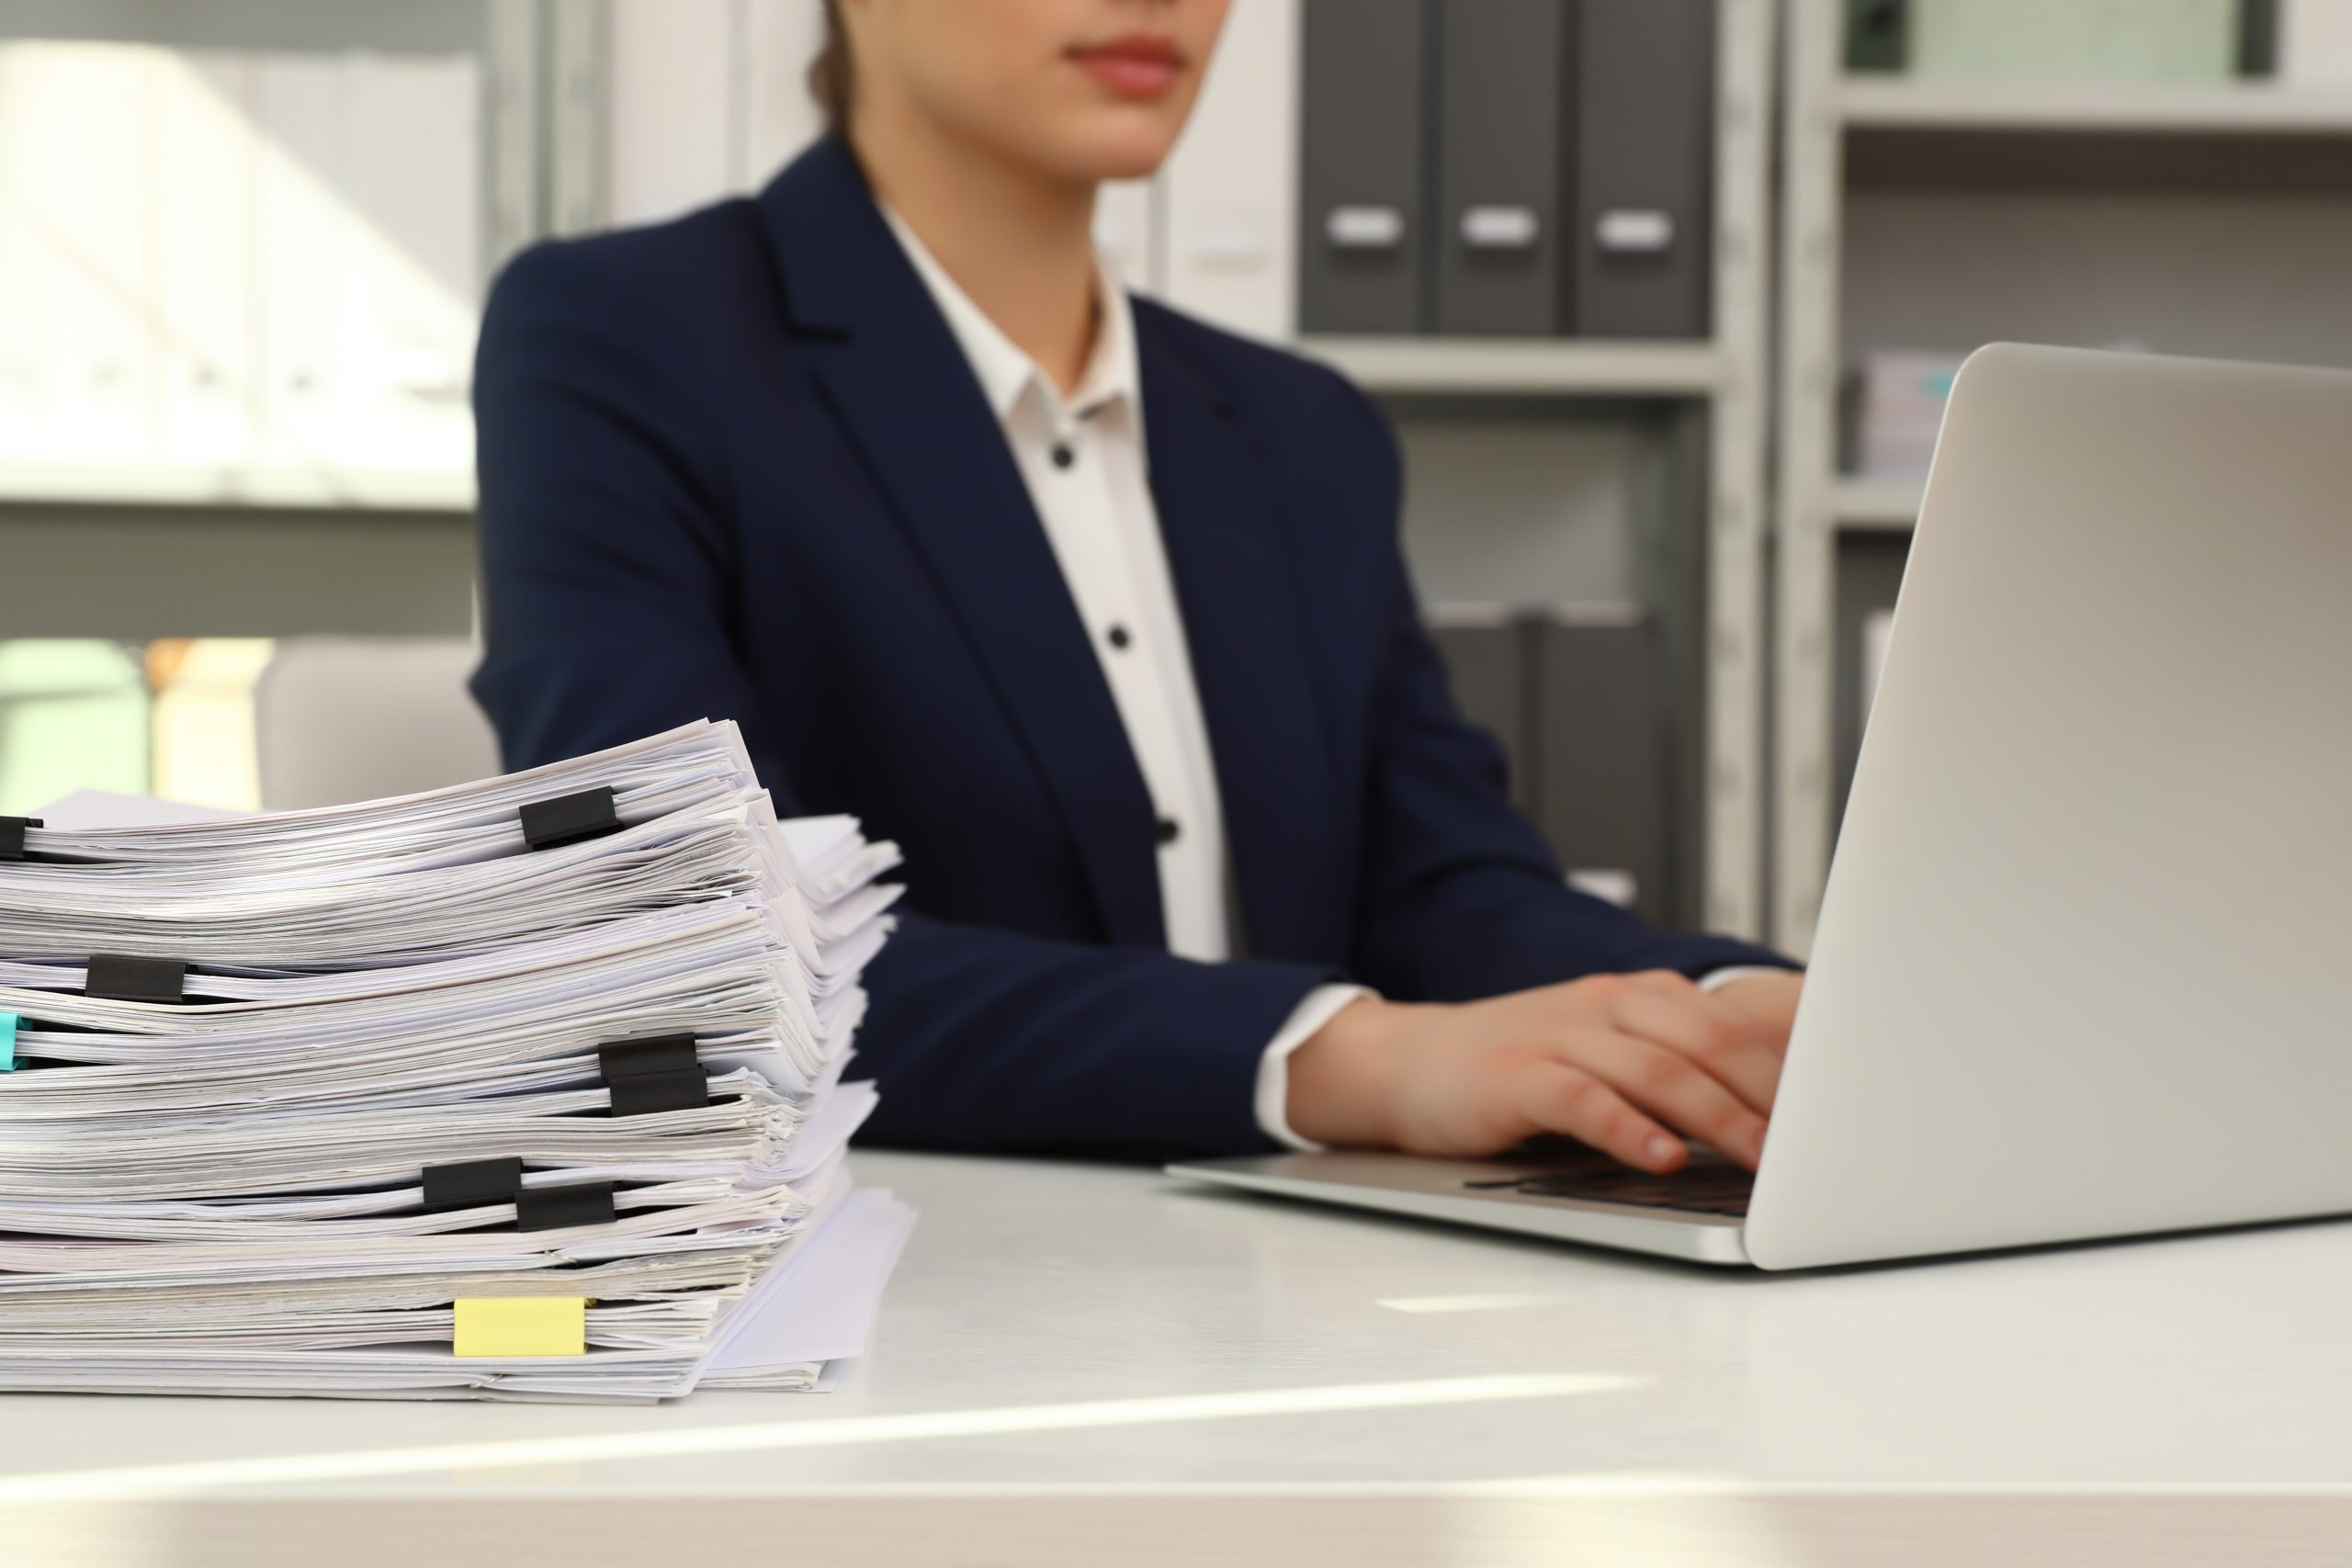 Female worker working with laptop near stack of documents in office, closeup